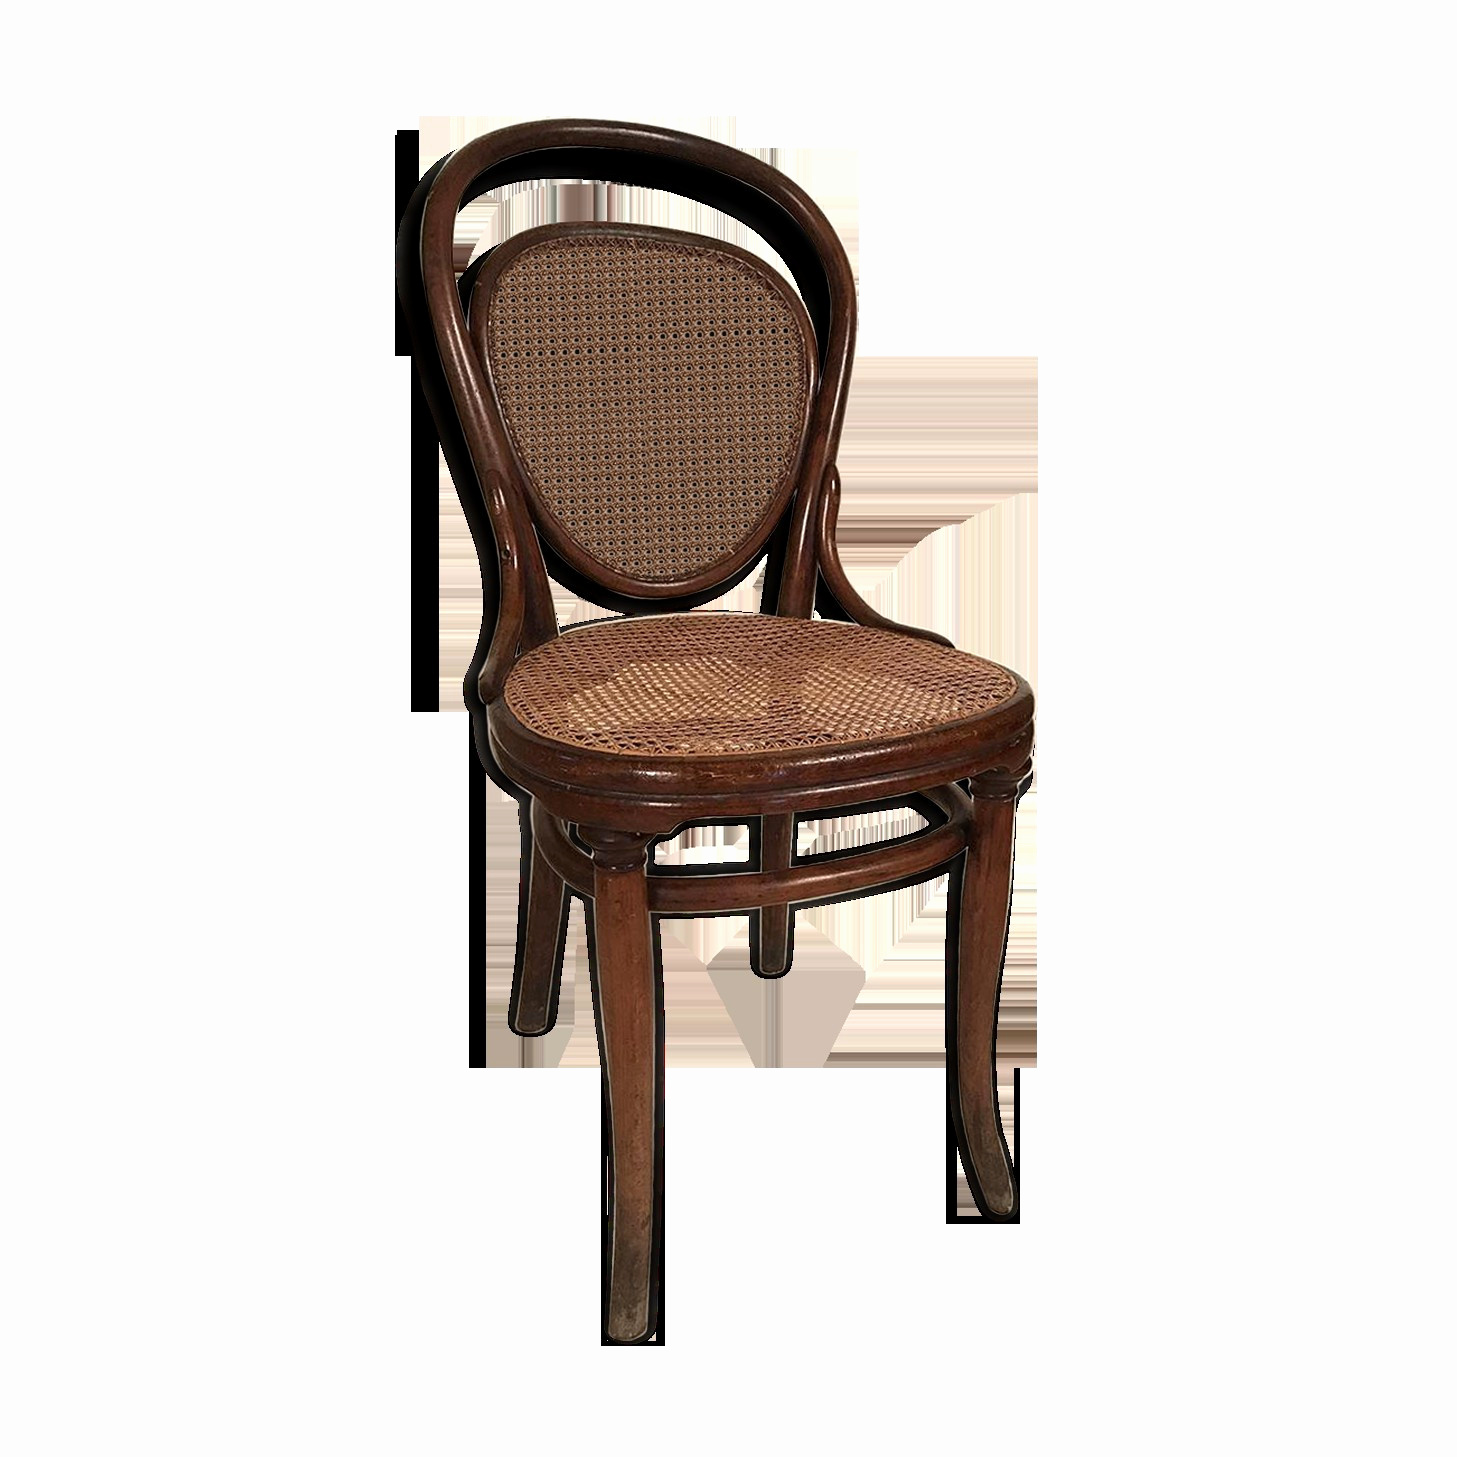 Chaise Bistrot Bois Pas Cher Luxe Impressionnant Chaise Bistrot Thonet Luckytroll Of 33 Charmant Chaise Bistrot Bois Pas Cher